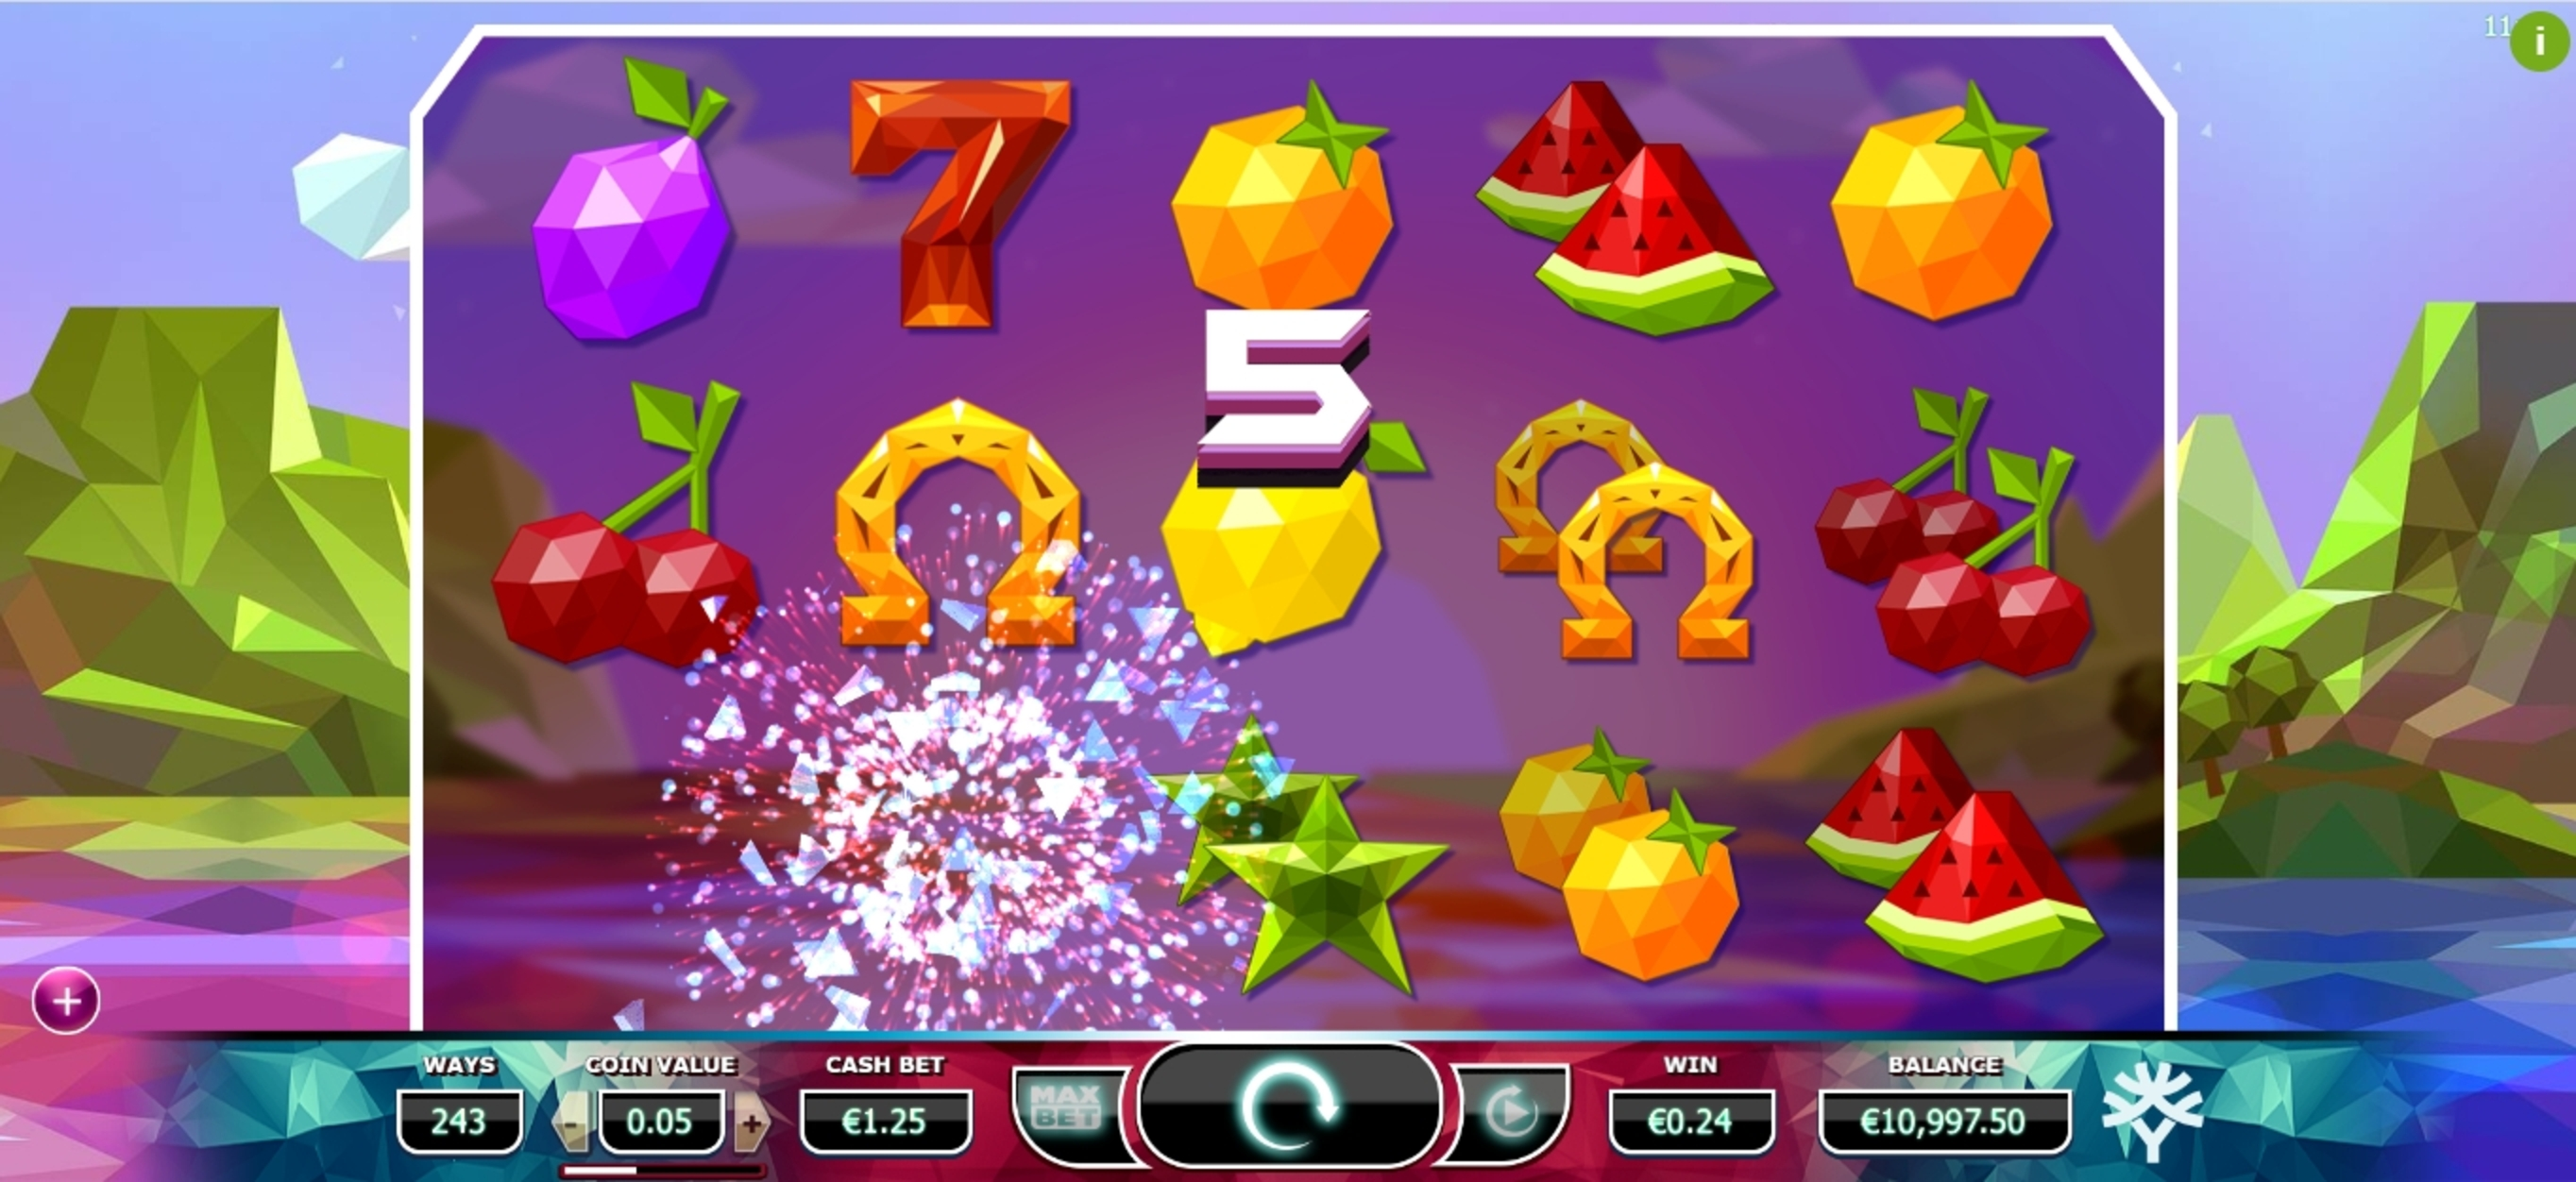 Win Money in Doubles Free Slot Game by Yggdrasil